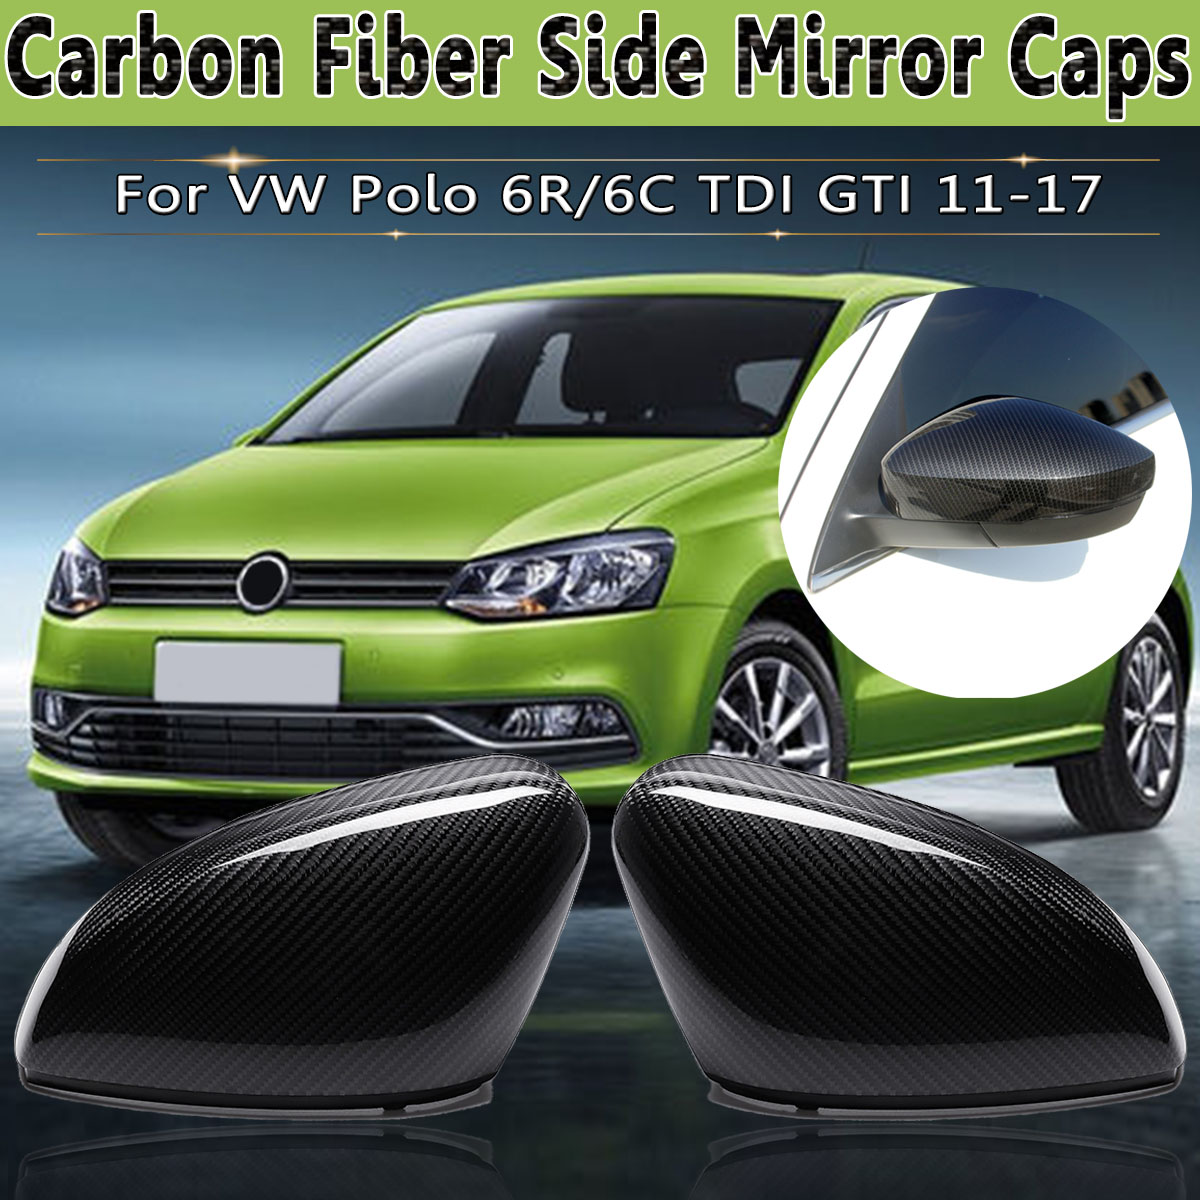 Kibowear for VW Polo 6R 6C Side Door Wing Mirror Cover Replace caps Carbon look